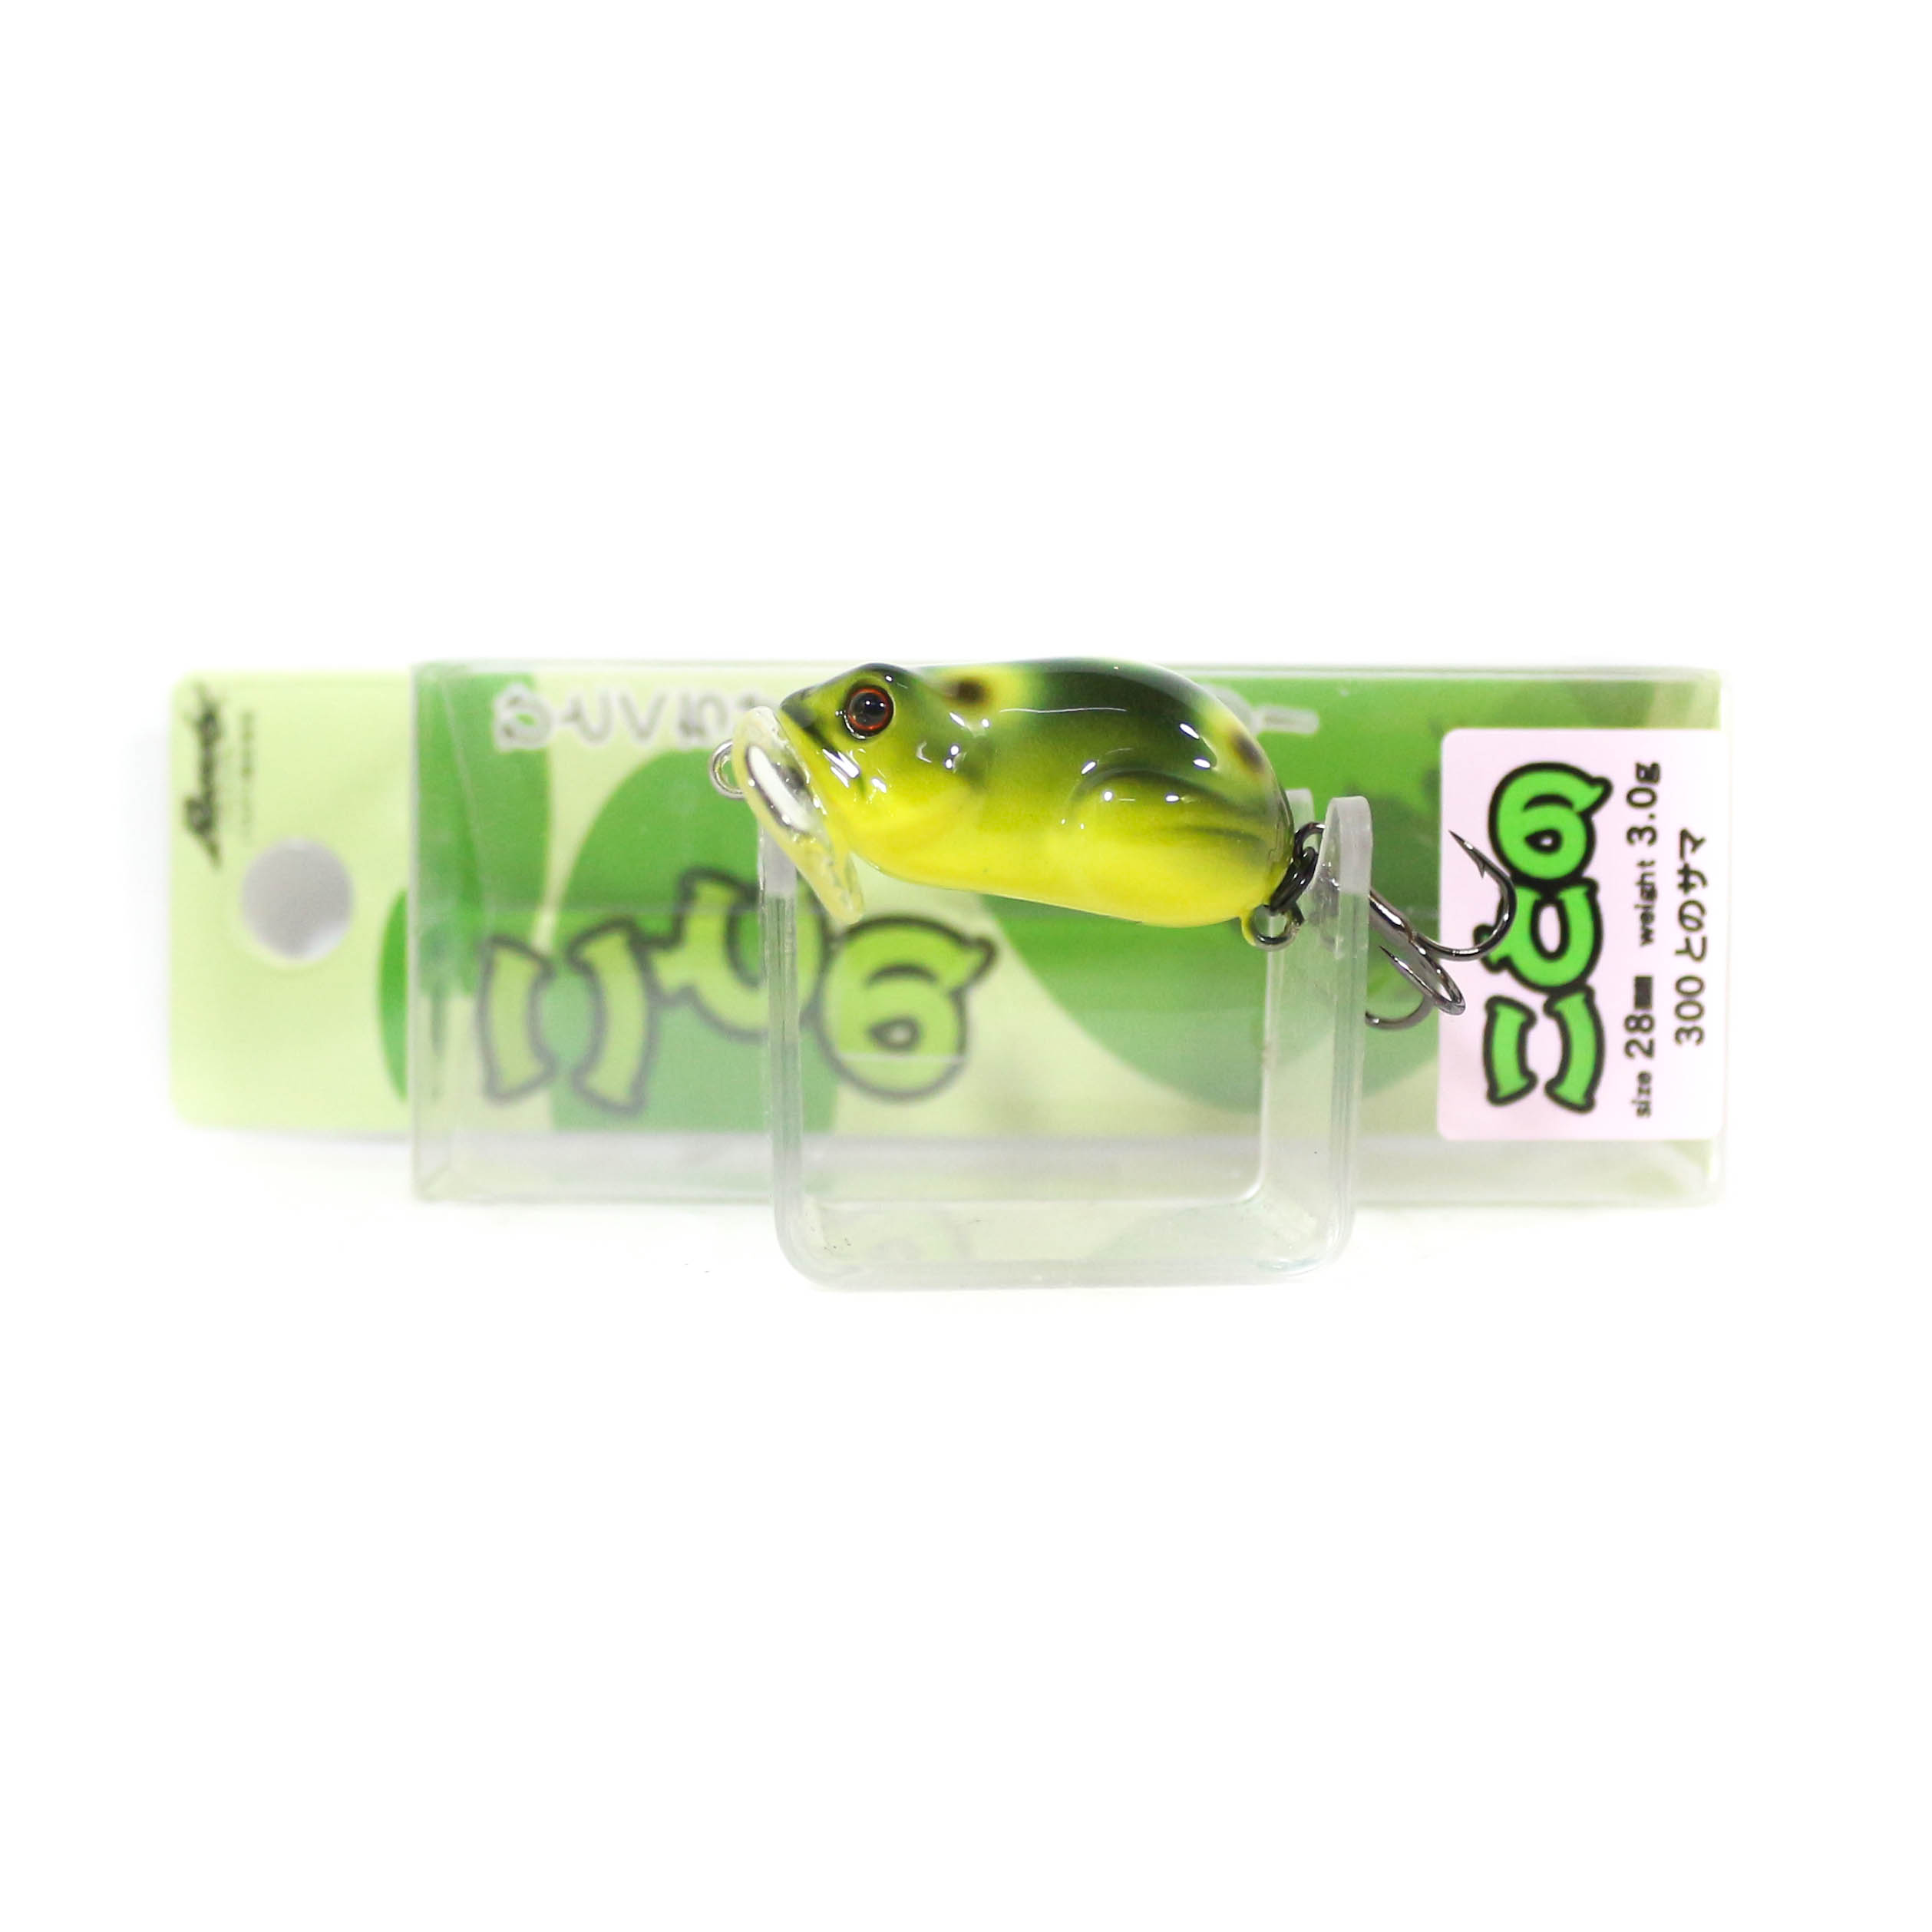 Bassday Kotono Frog Floating Lure 3 grams 333 (1172)